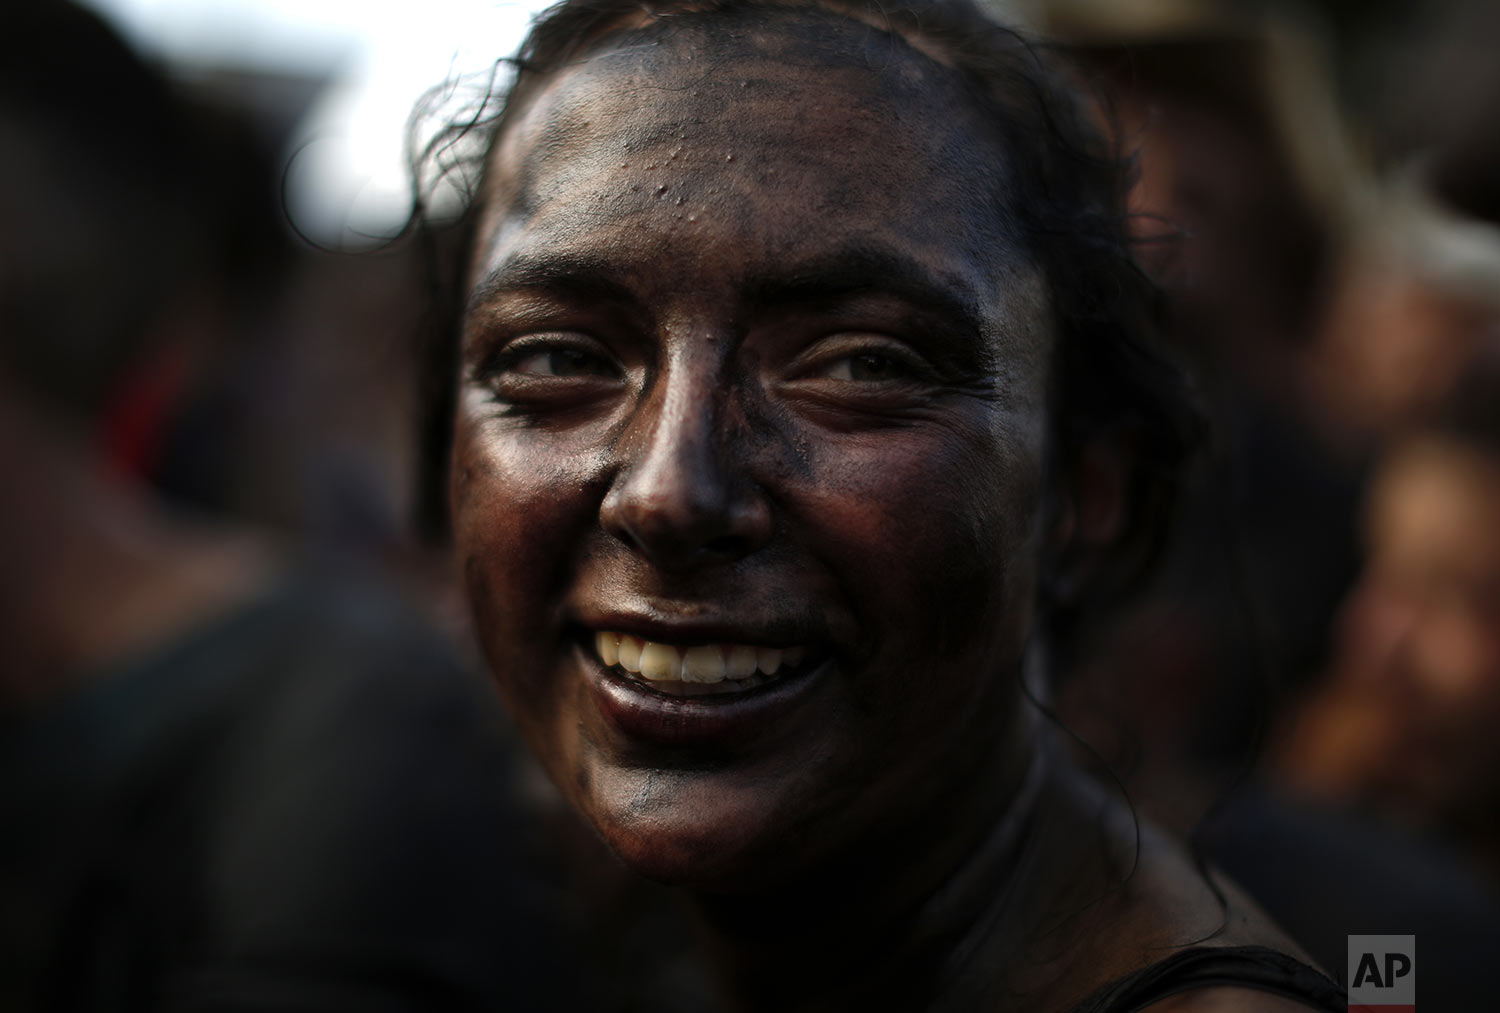 A woman painted with black grease smiles as she takes part at the traditional festivities of the Cascamorras festival in Baza, Spain, Friday, Sept. 6, 2019. (AP Photo/Manu Fernandez)